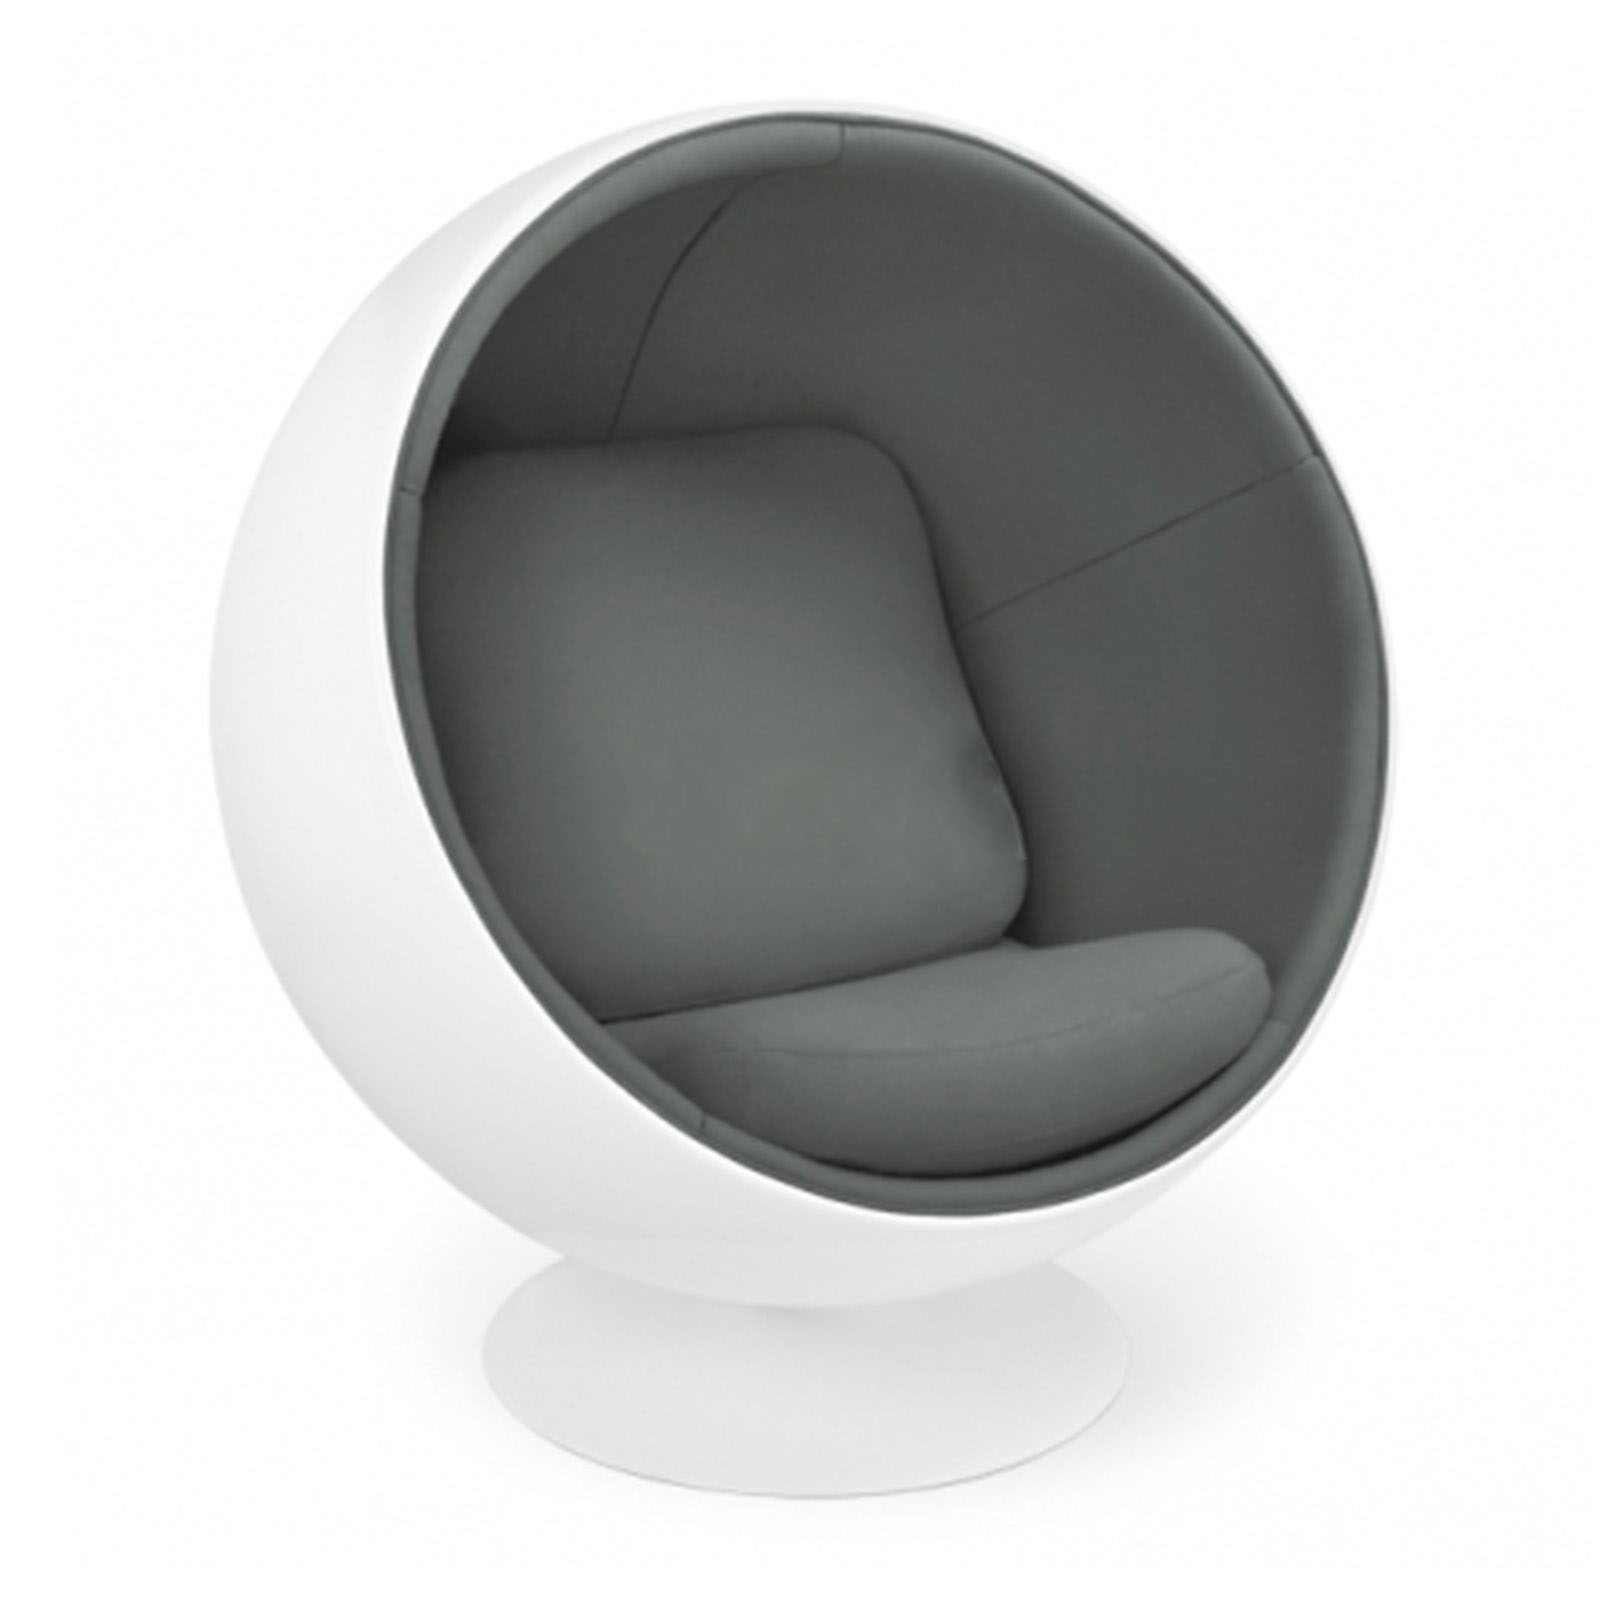 voga ball-chair-for-kids-grey----_26_134